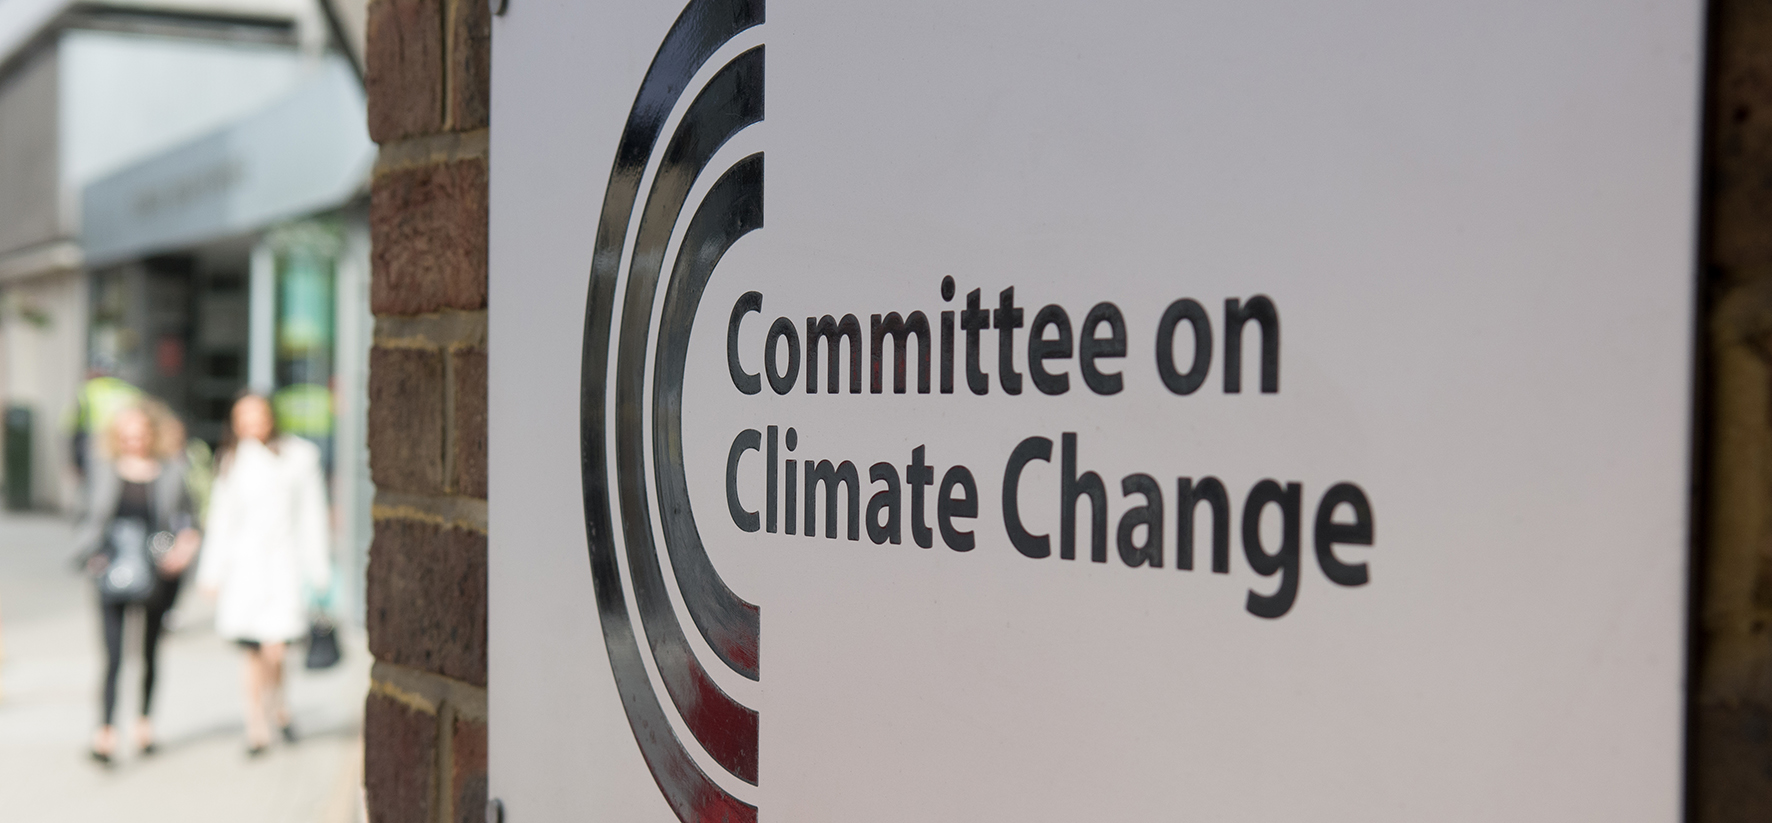 UK must put low-carbon agenda at the heart of economic recovery